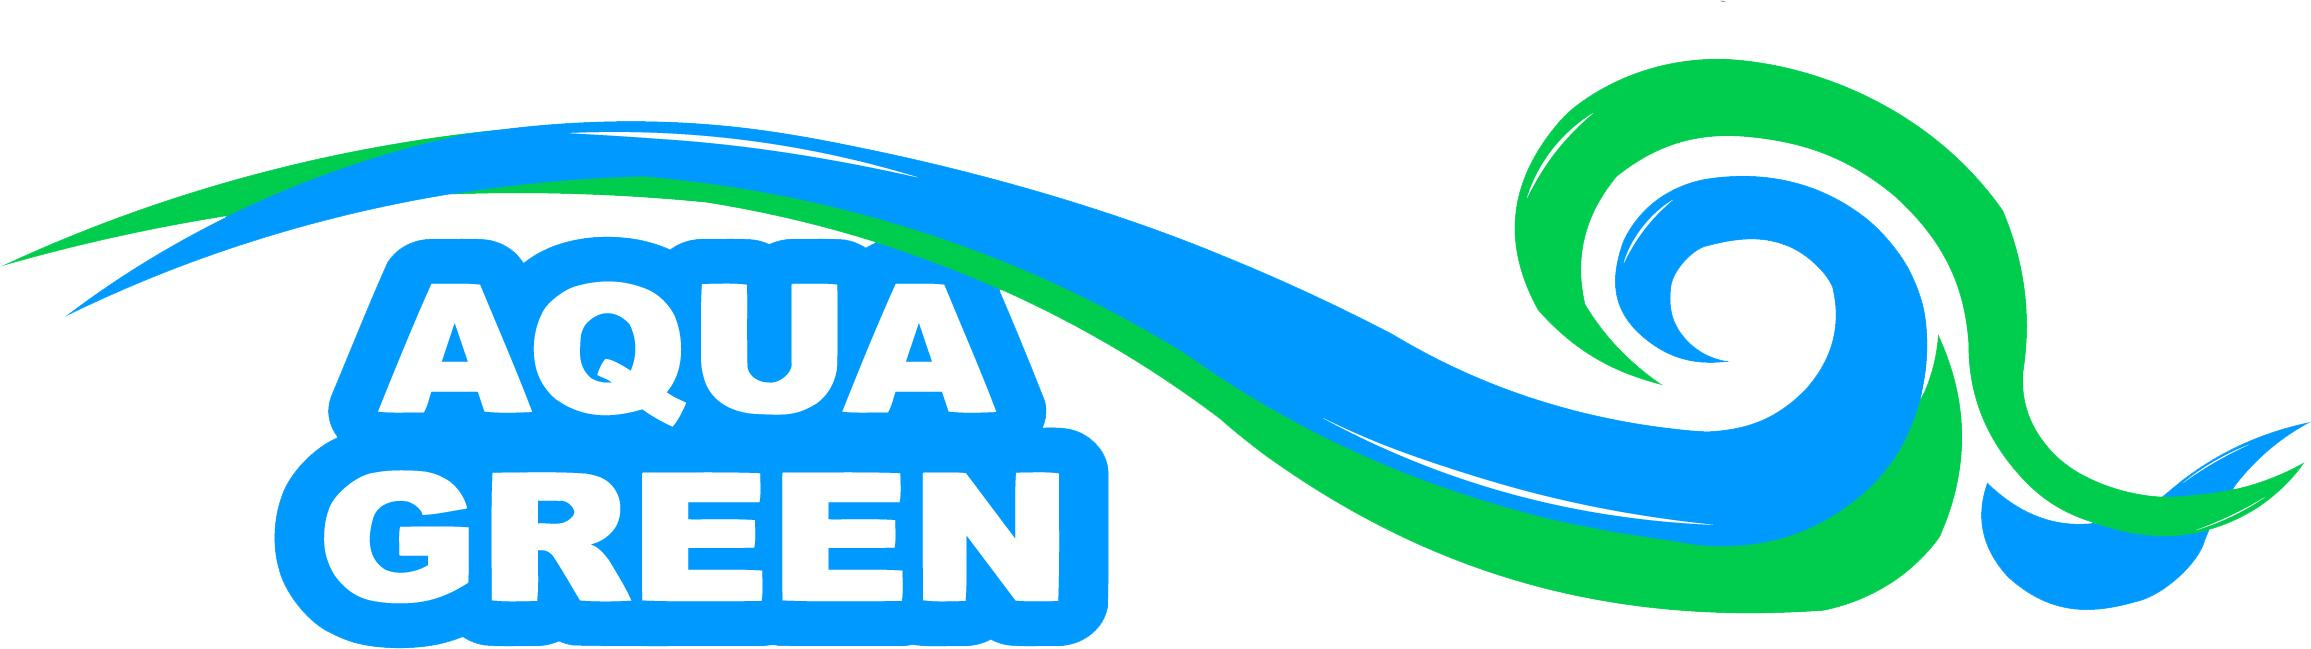 aquagreen logo_1_20